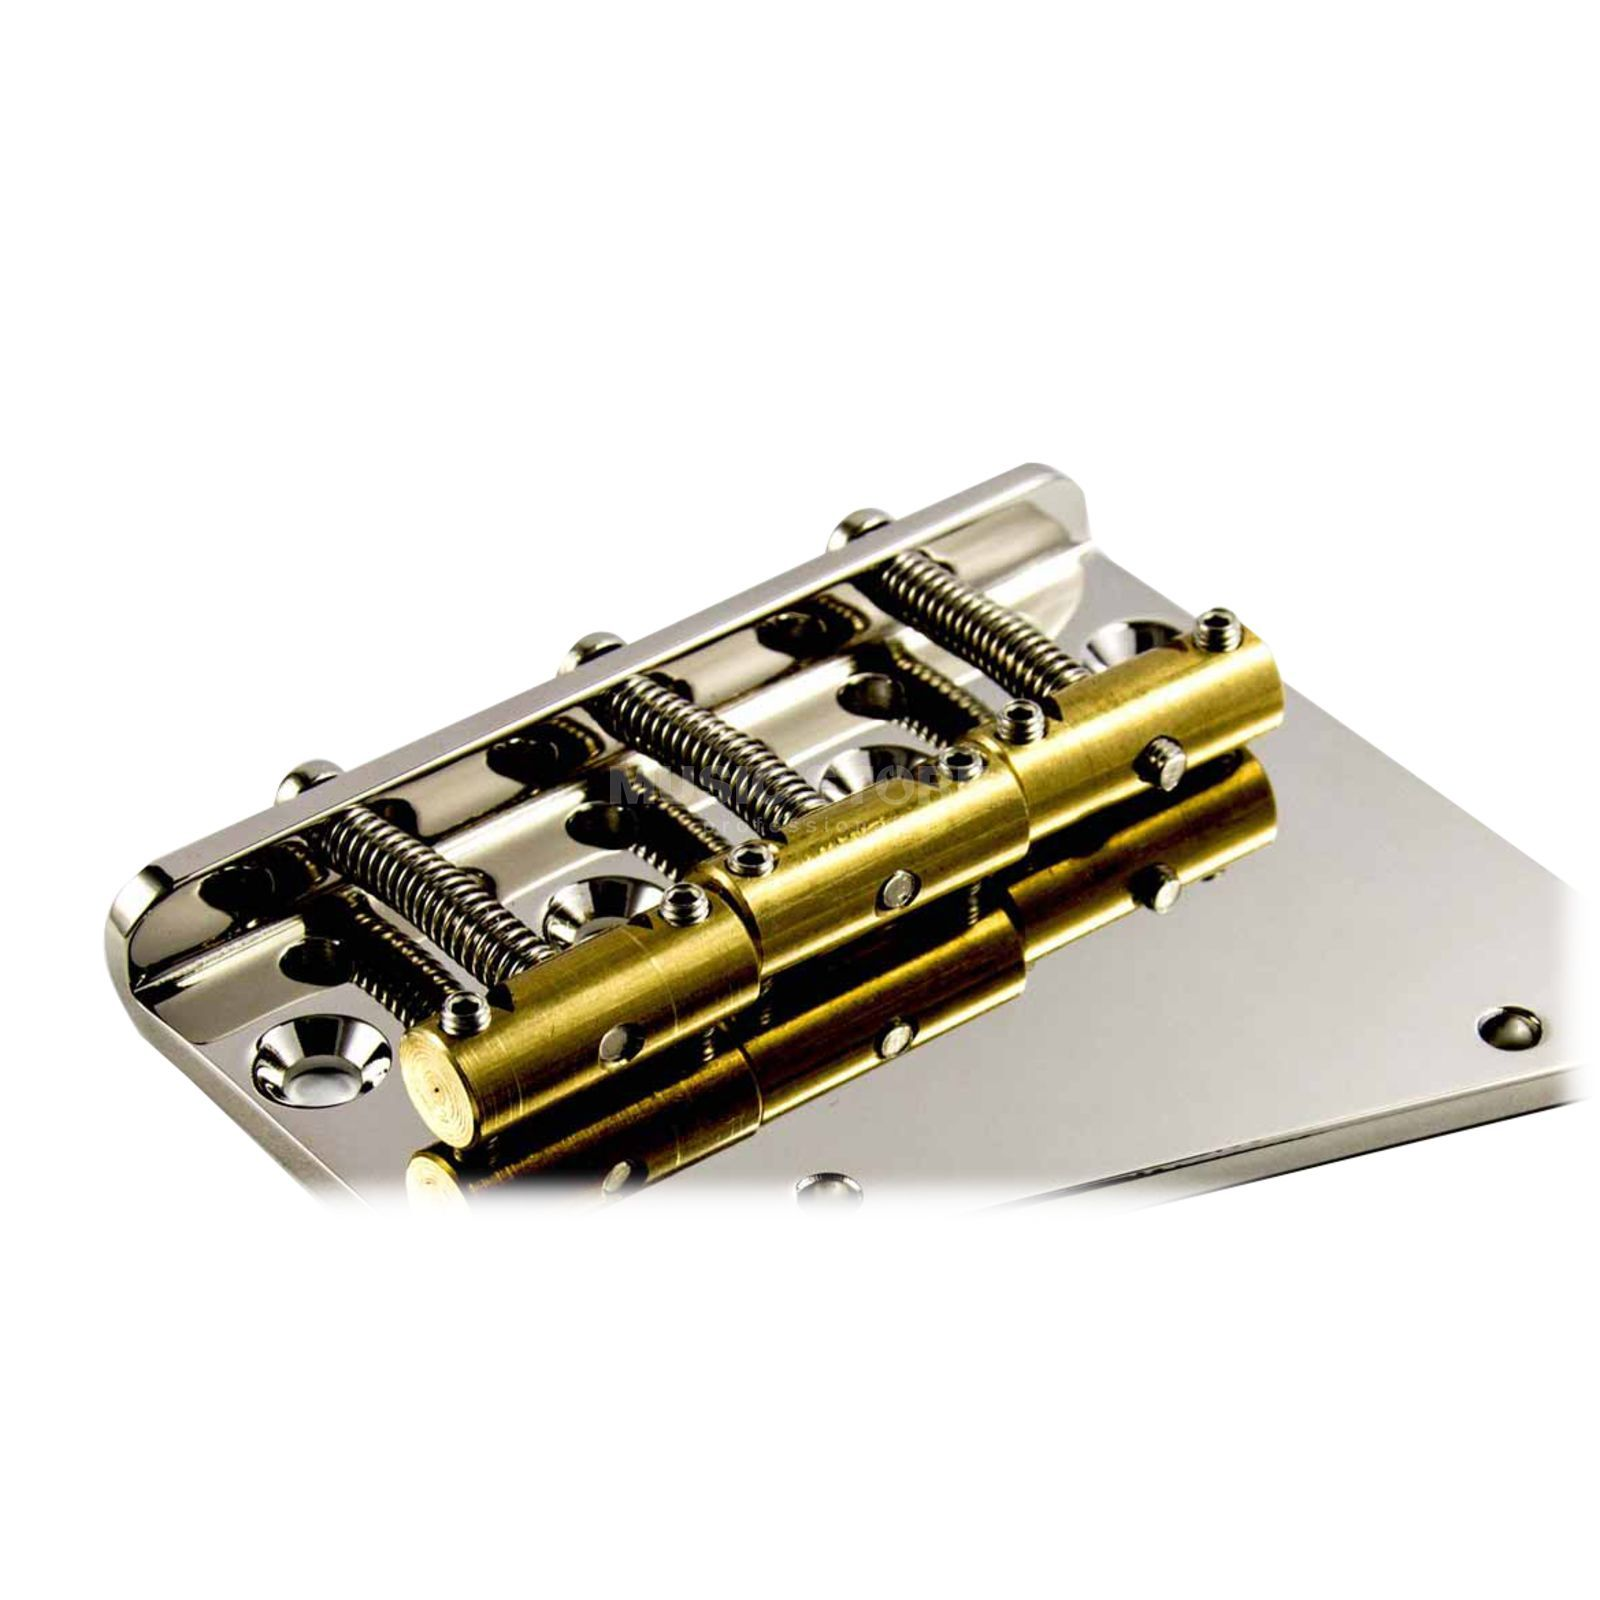 ABM Guitar Parts VCS Tele Reiter kompensiert, Messing, M3 Product Image